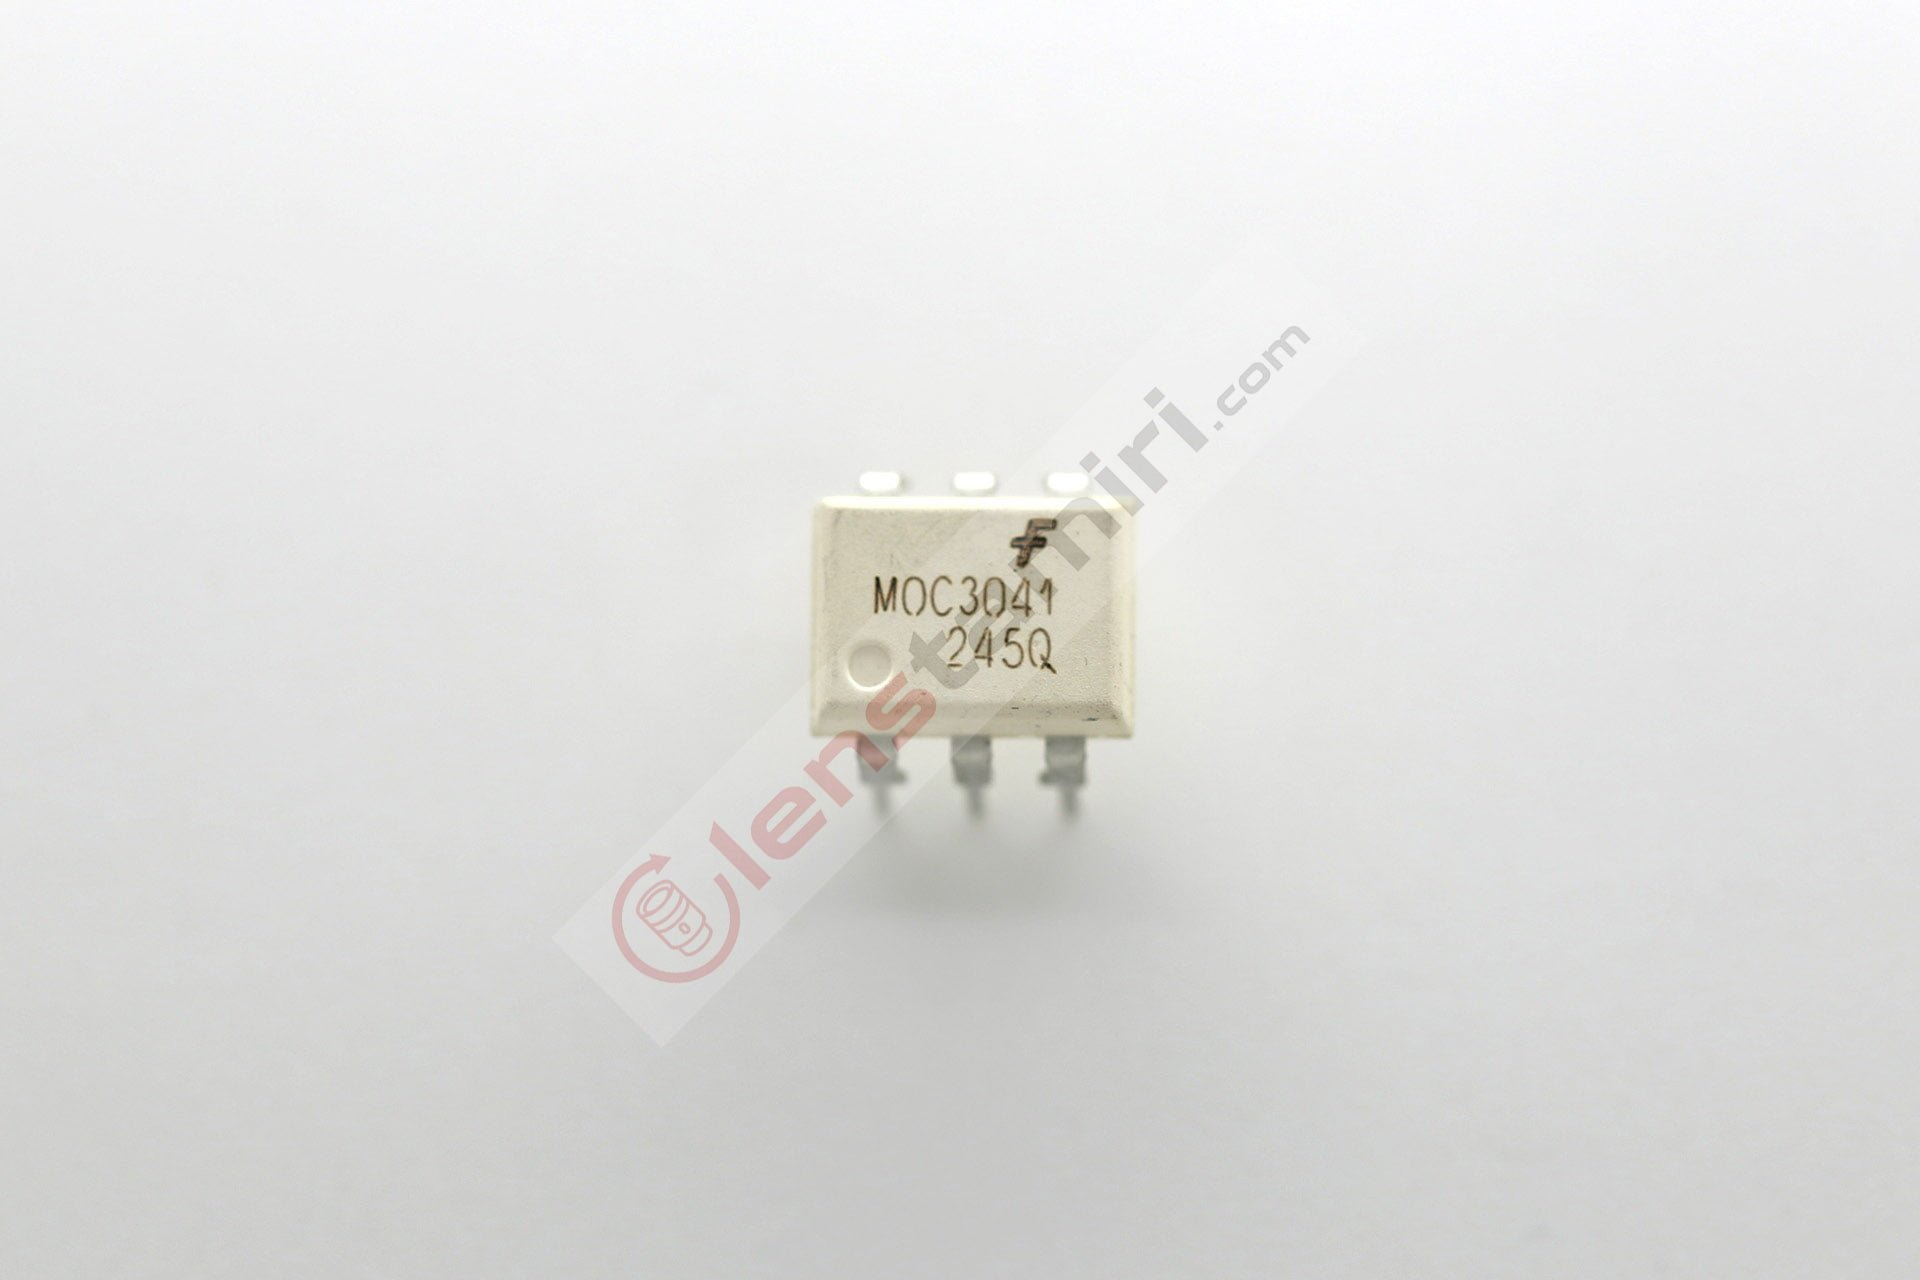 Optocouplers Parafla Yedek Para Sat Teknik Servisi Optocoupler Power Circuit With Moc3041 An Is A